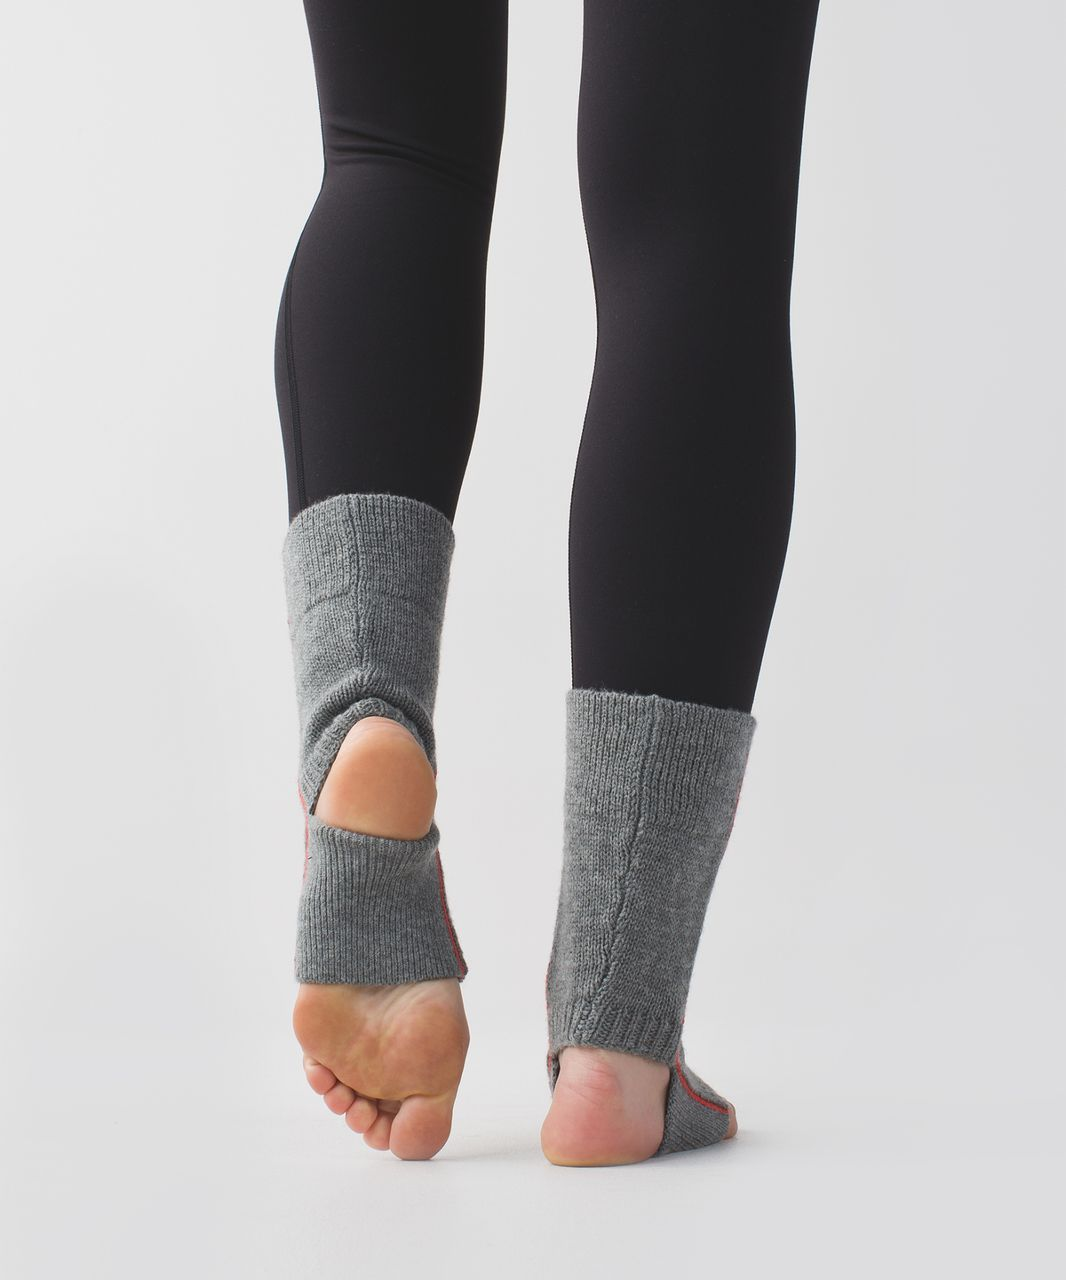 Lululemon Endless Summer Ankle Warmers - Heathered Slate / Alarming